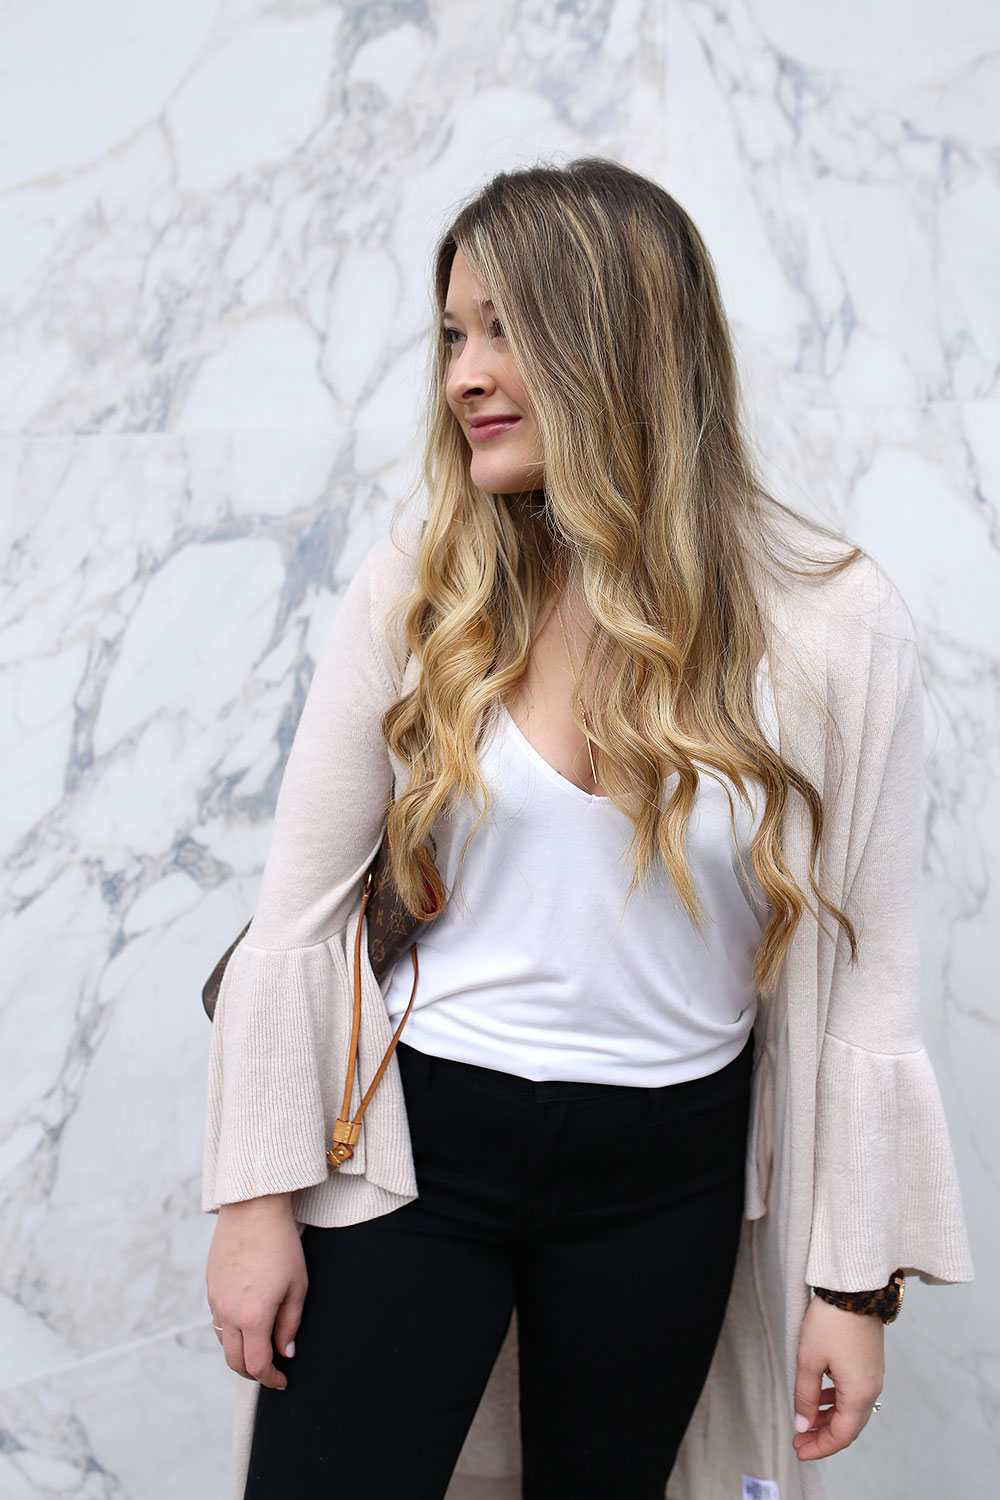 How to look polished with minimal effort and all-day comfort. Don't wear an uncomfortable outfit for the sake of fashion again. Check out these five tips on how to look effortlessly stylish every day without compromising comfort. Every day street style for women.